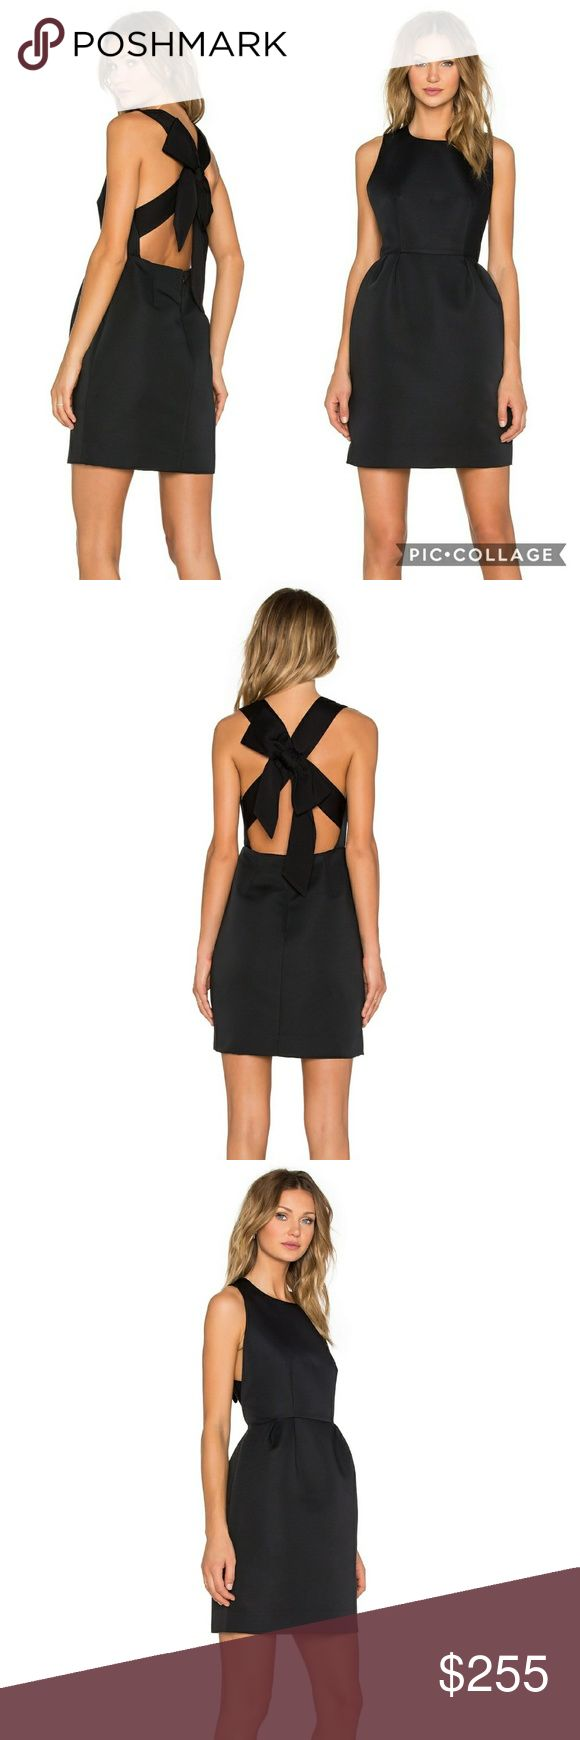 Kate Spade bow back dress Not. SB kate spade Dresses Mini